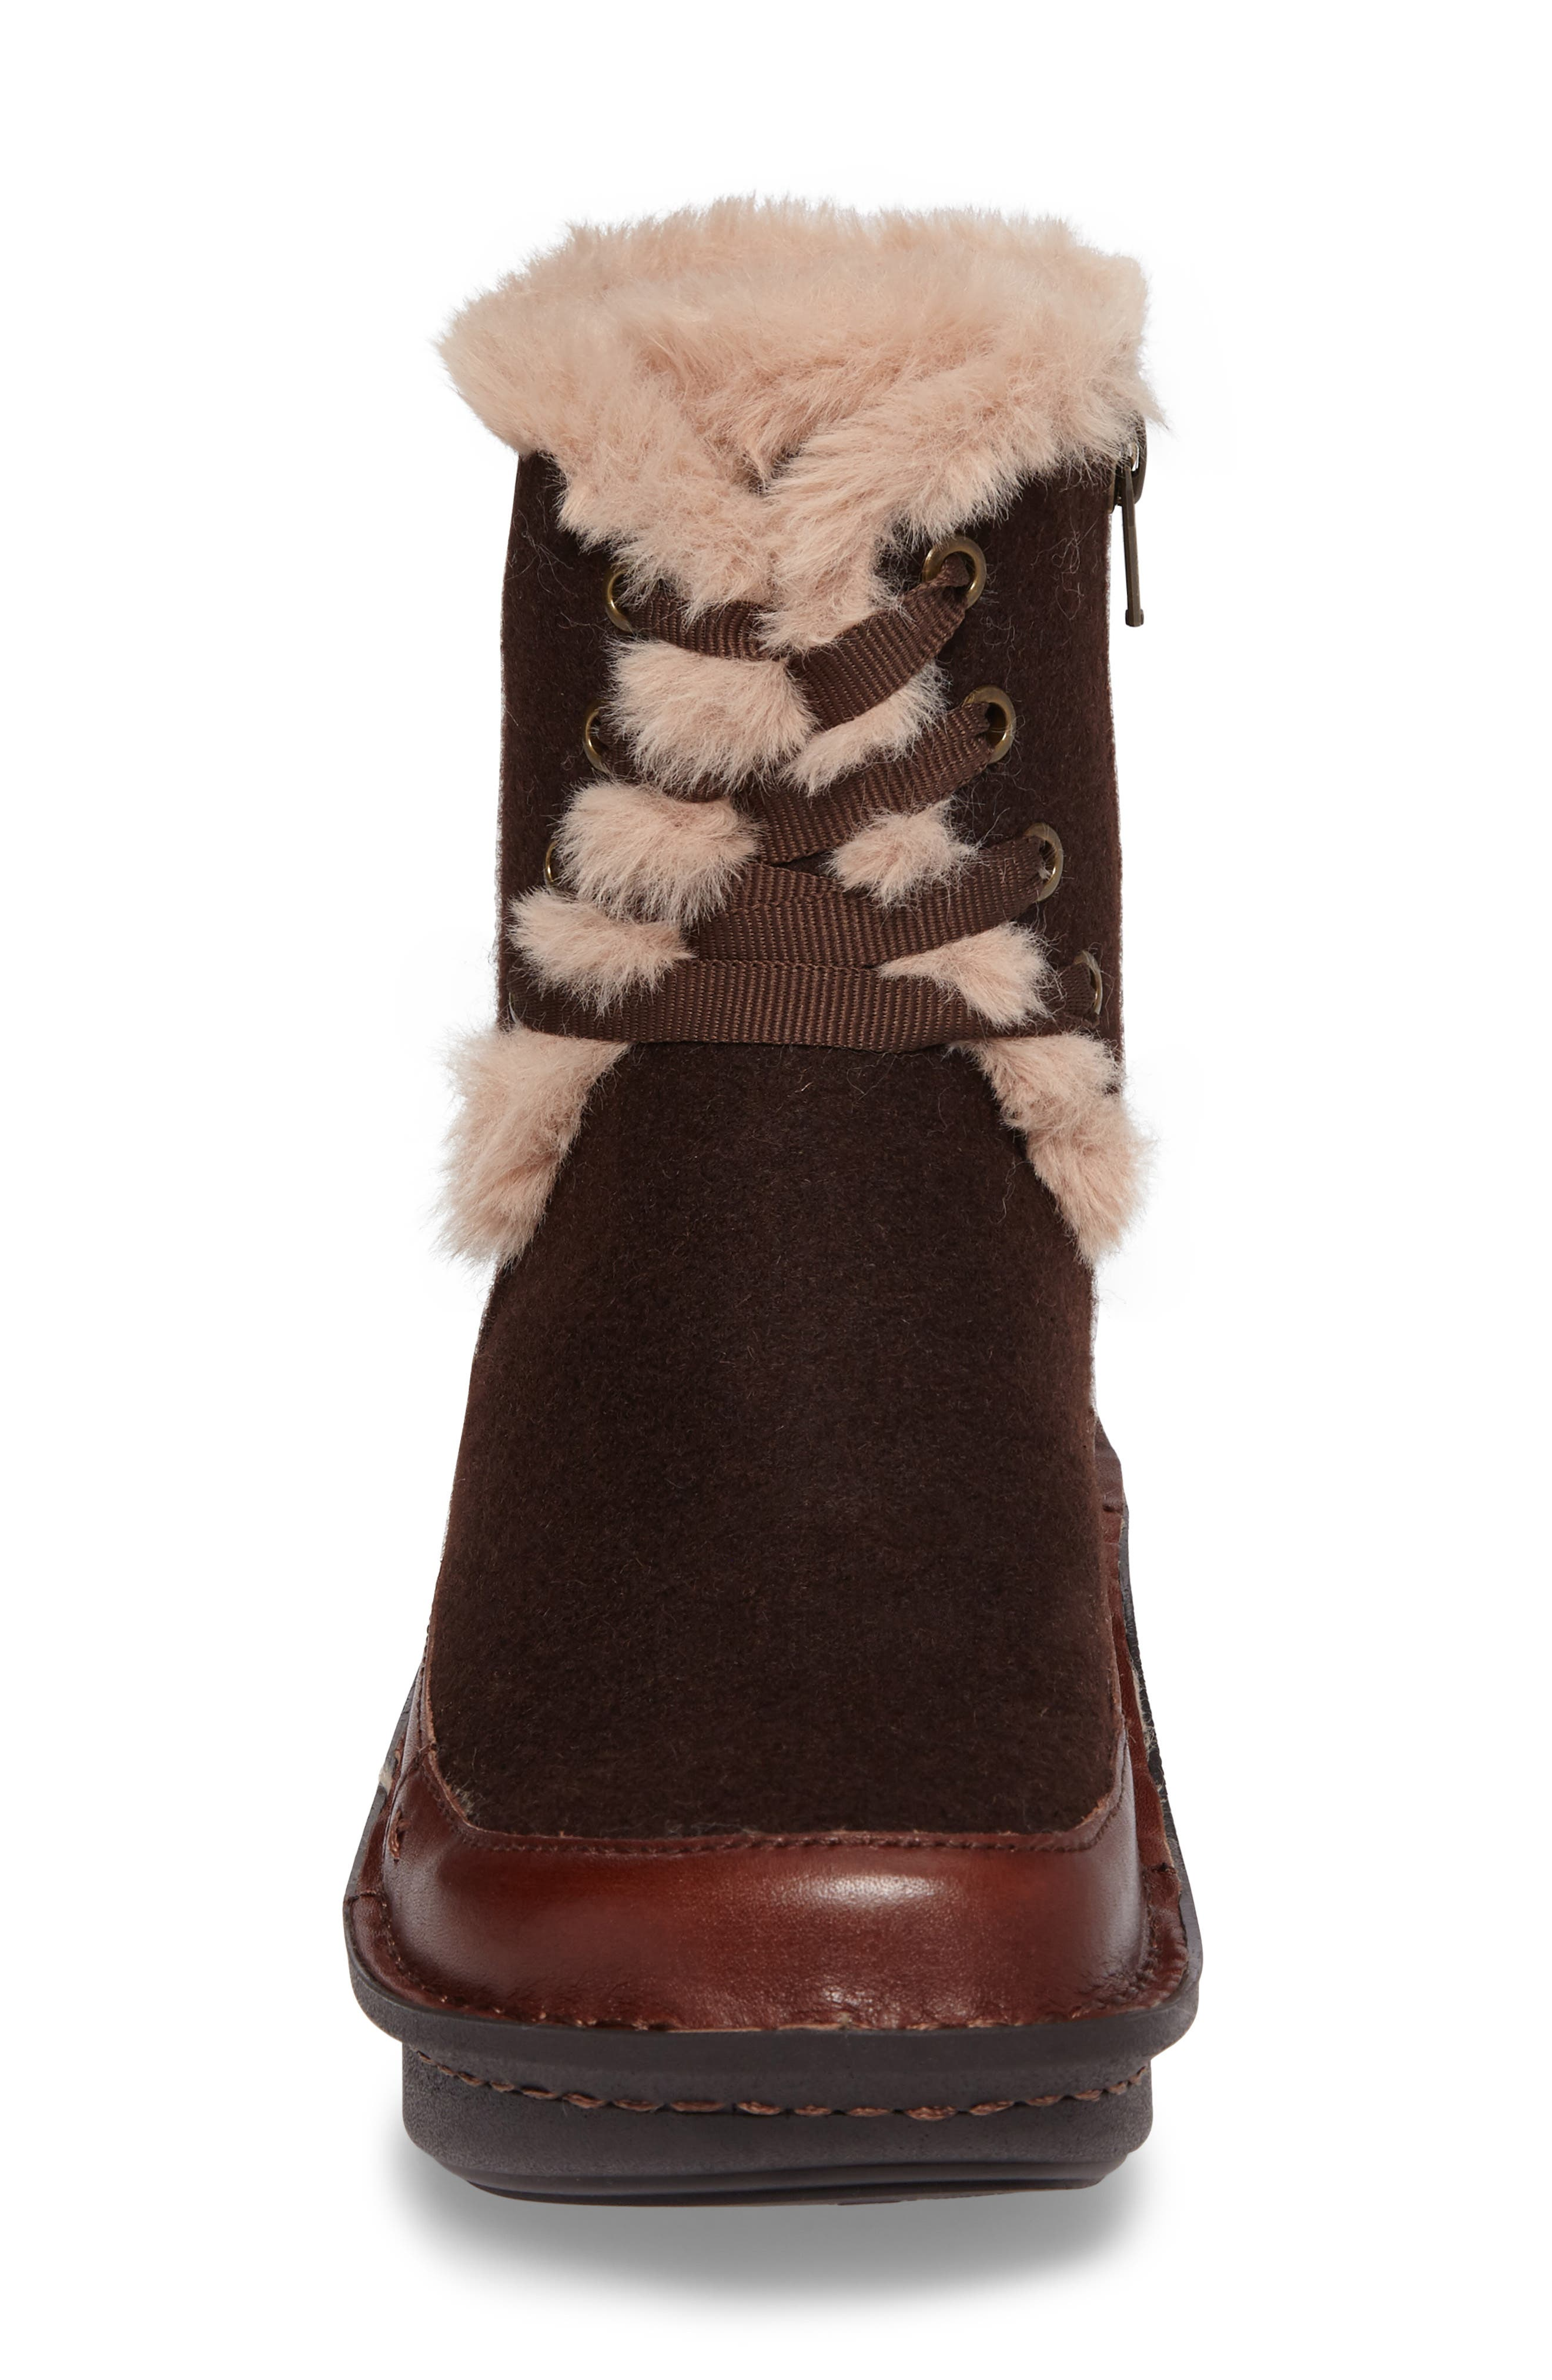 Twisp Lace-Up Boot with Faux Fur Lining,                             Alternate thumbnail 4, color,                             Hazelnut Wool Leather